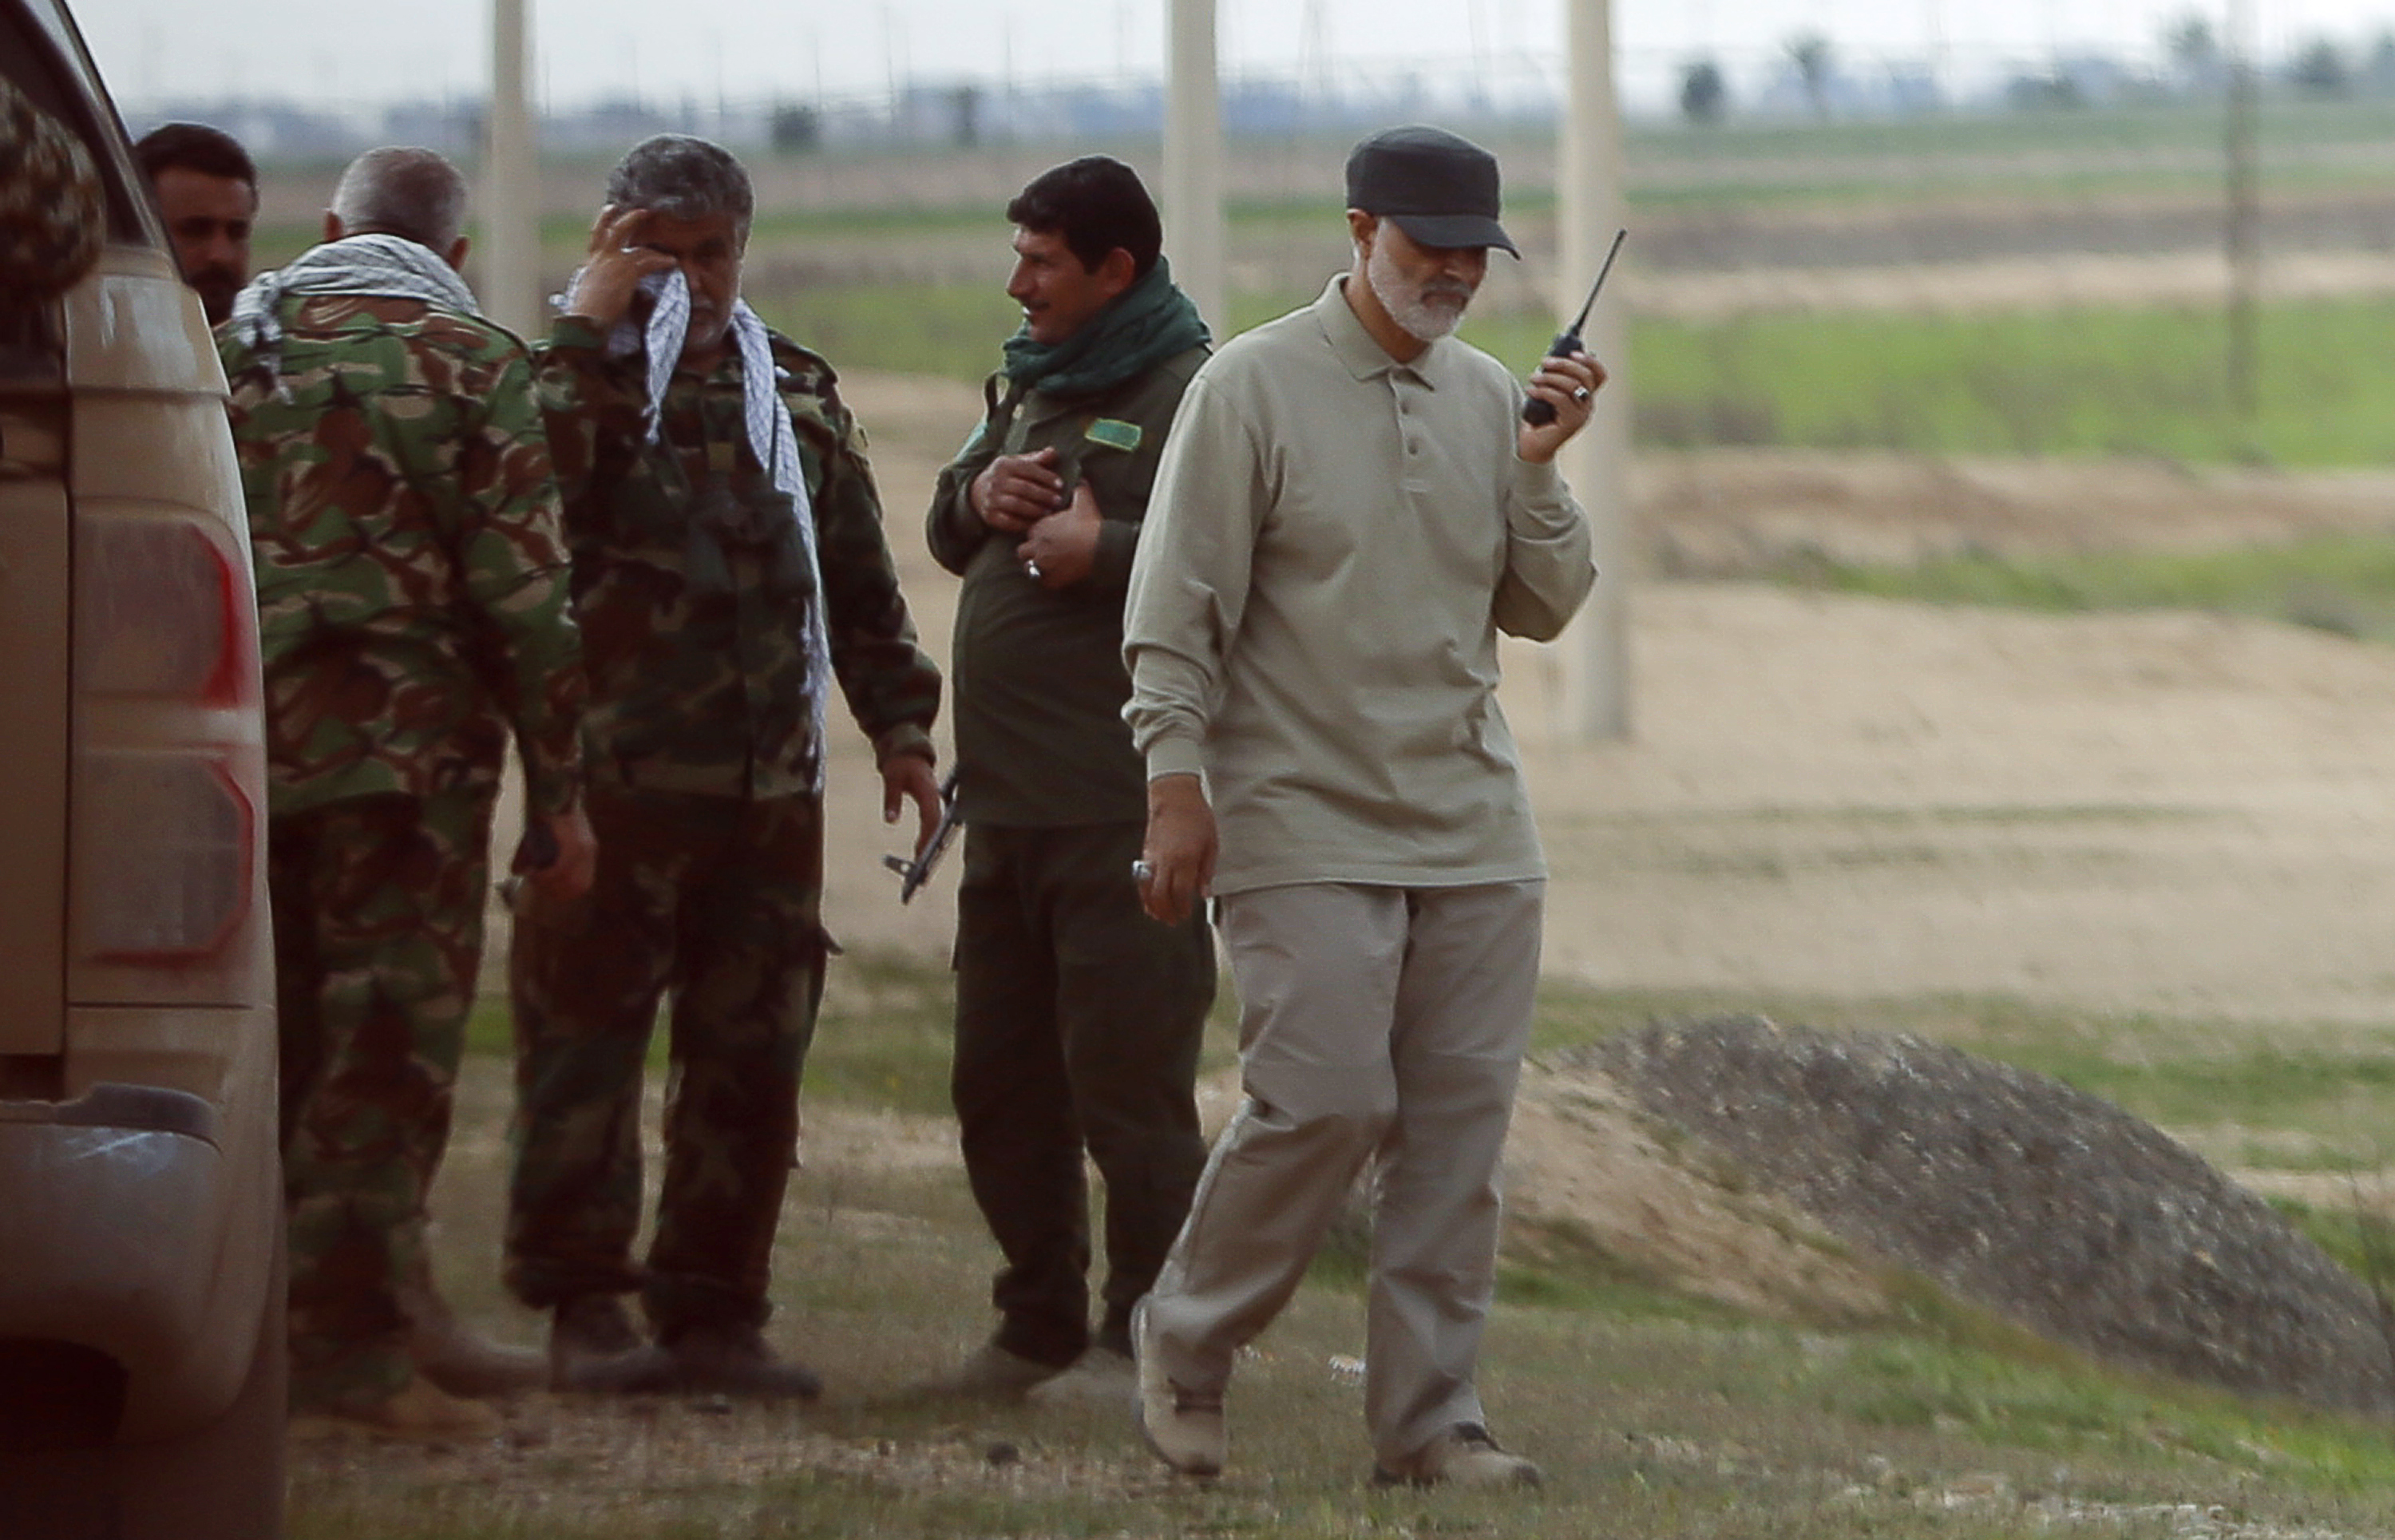 Iranian Major General Qassem Soleimani uses a walkie-talkie at the front line during offensive operations against Islamic State militants in the town of Tal Ksaiba in Salahuddin province, Iraq, March 8, 2015.